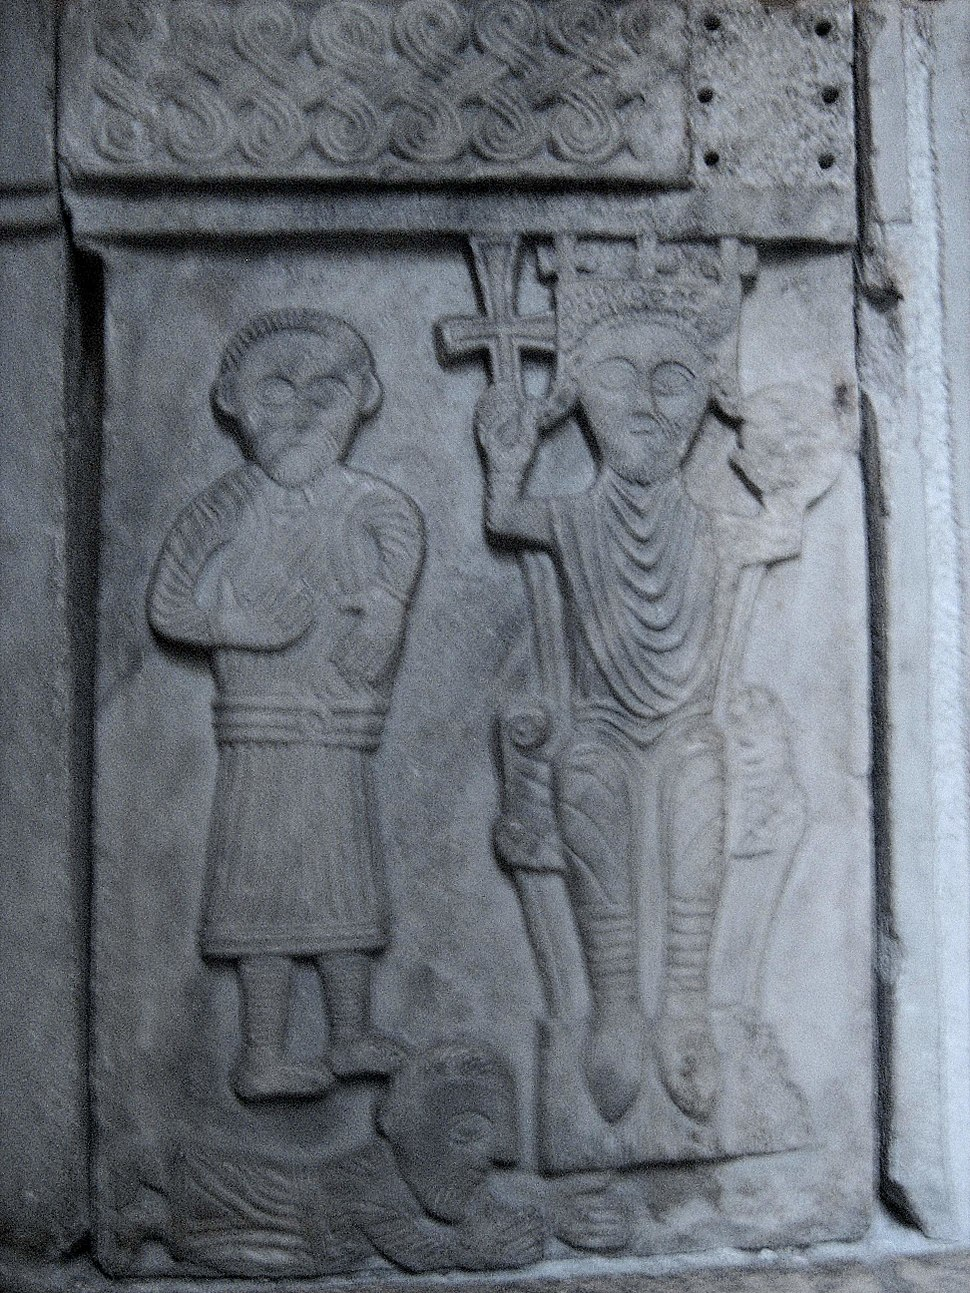 Pluteus with the figure of a Croatian king